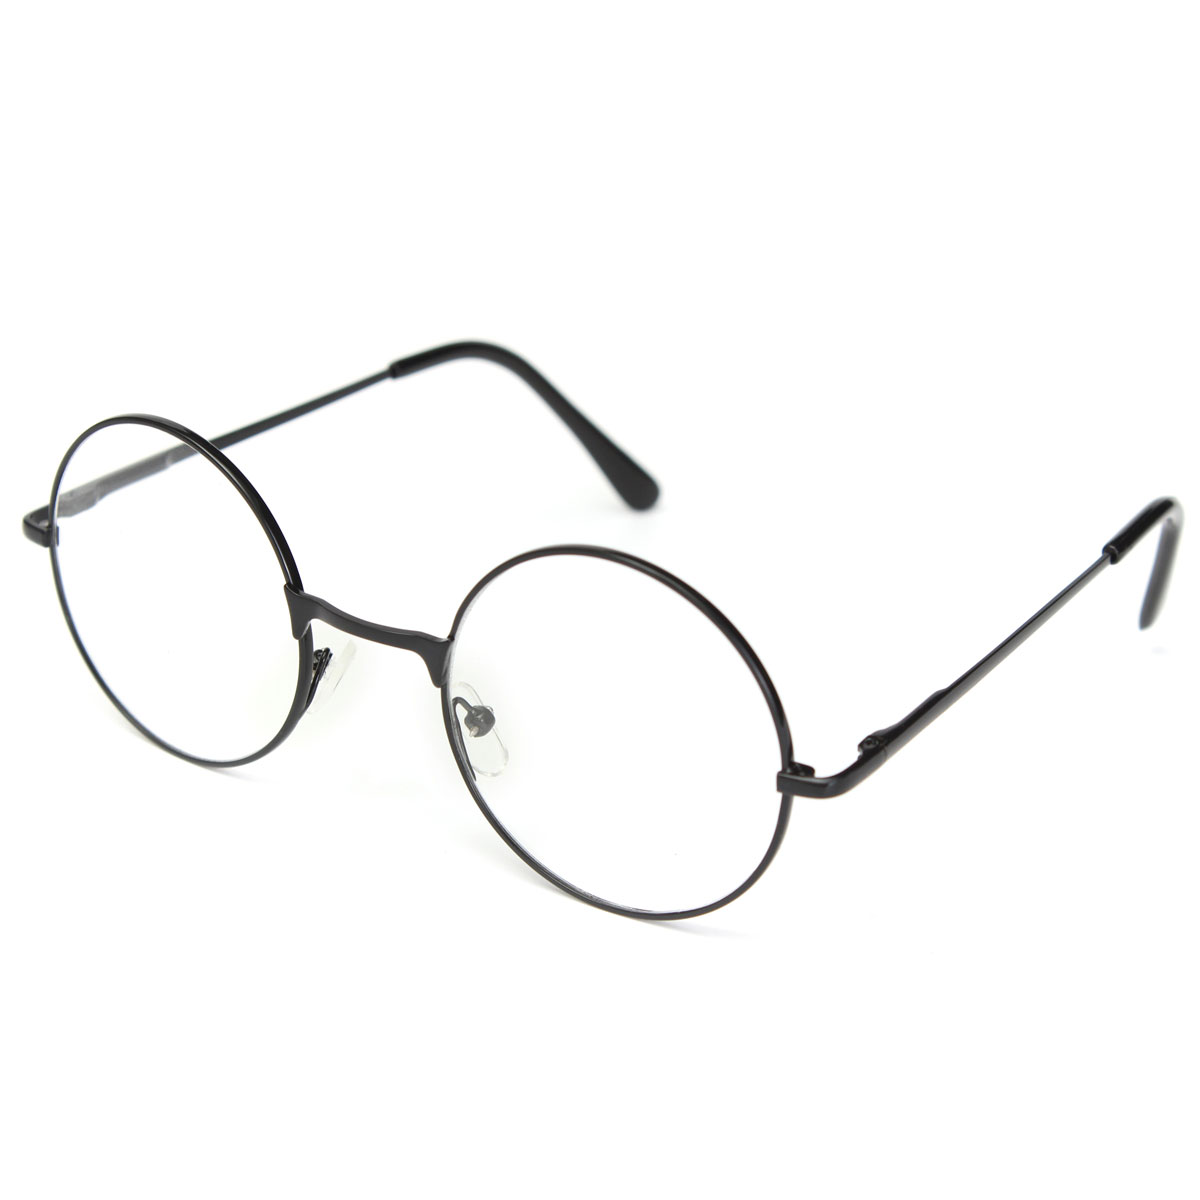 15903ec693a Vintage Round Reading Glasses - Bitterroot Public Library